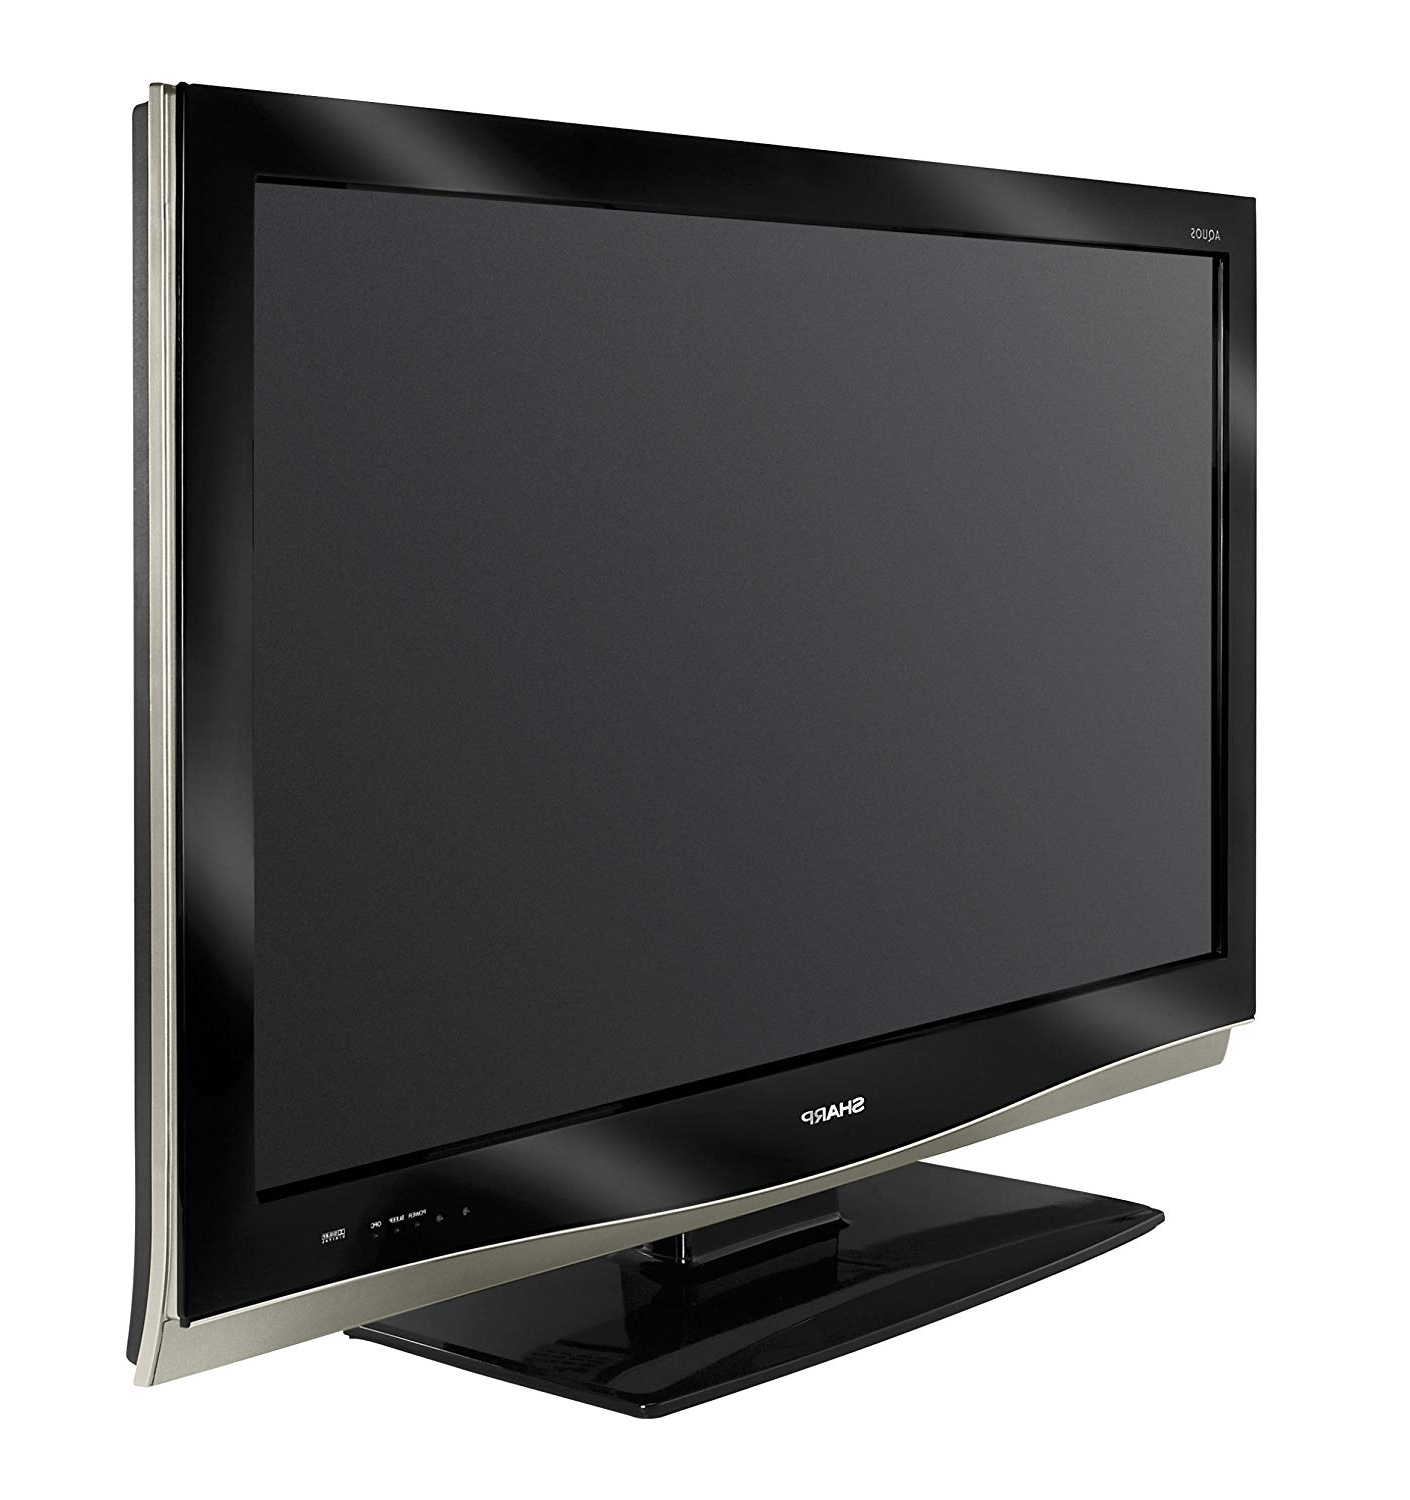 24 Inch Led Tv Stands Regarding Famous Amazon: Sharp Aquos Lc42d62u 42 Inch 1080p Lcd Hdtv: Electronics (View 13 of 20)